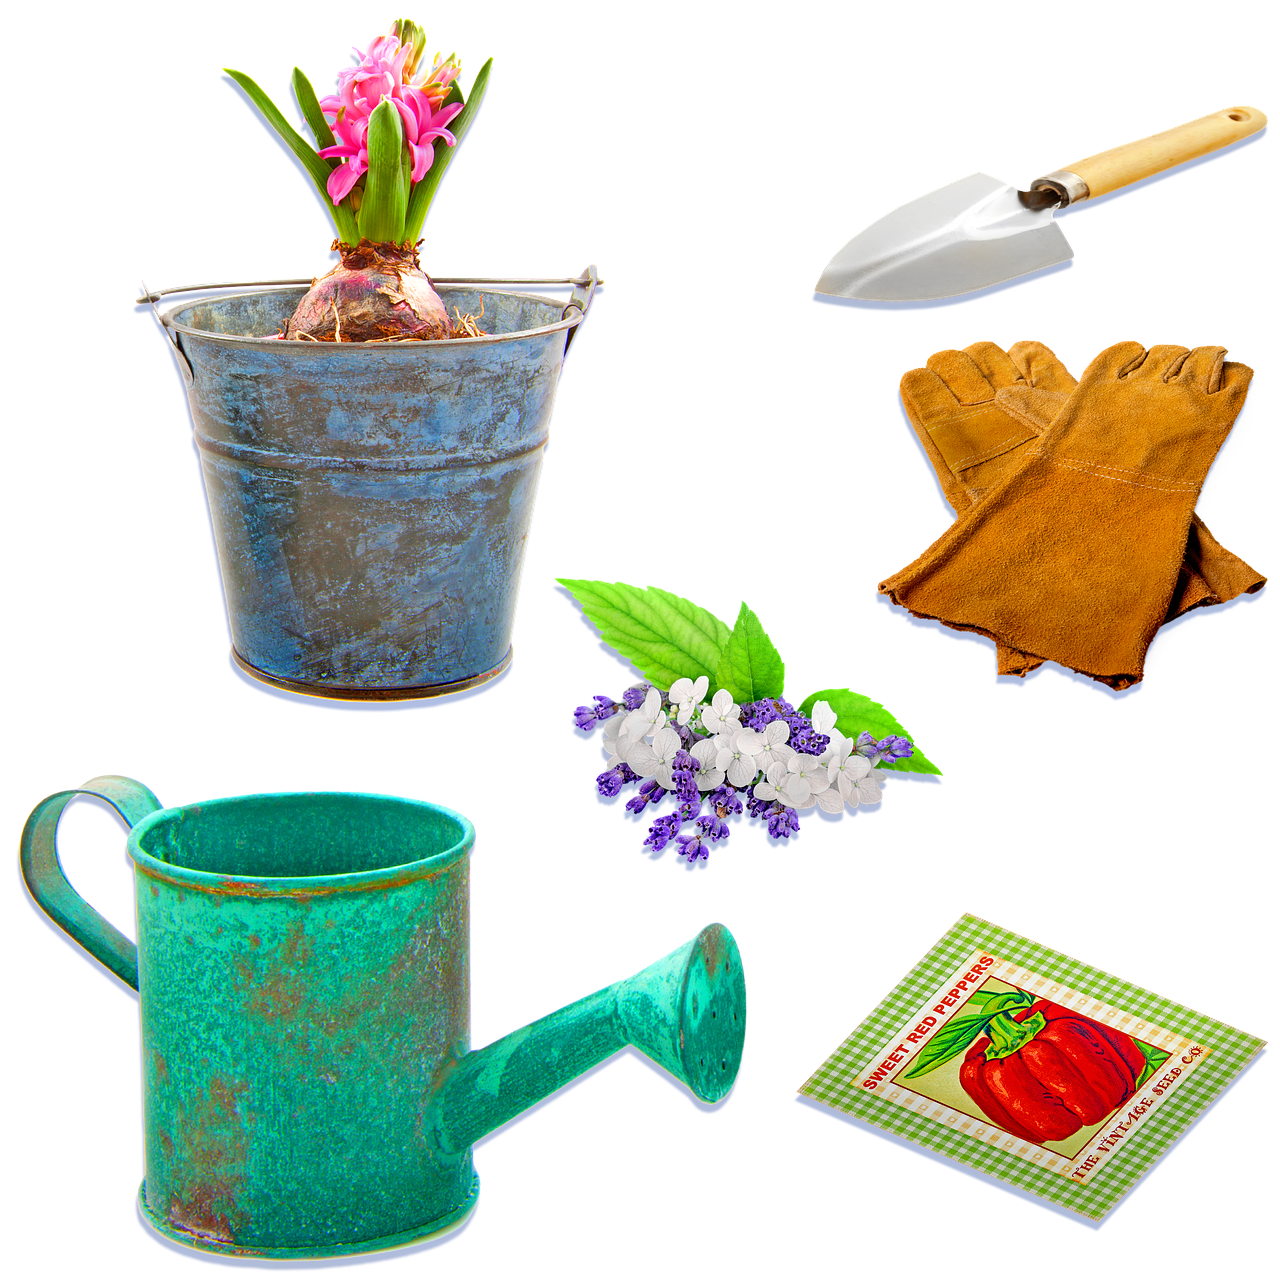 6 Gardening Supplies That You Must Provide At Home